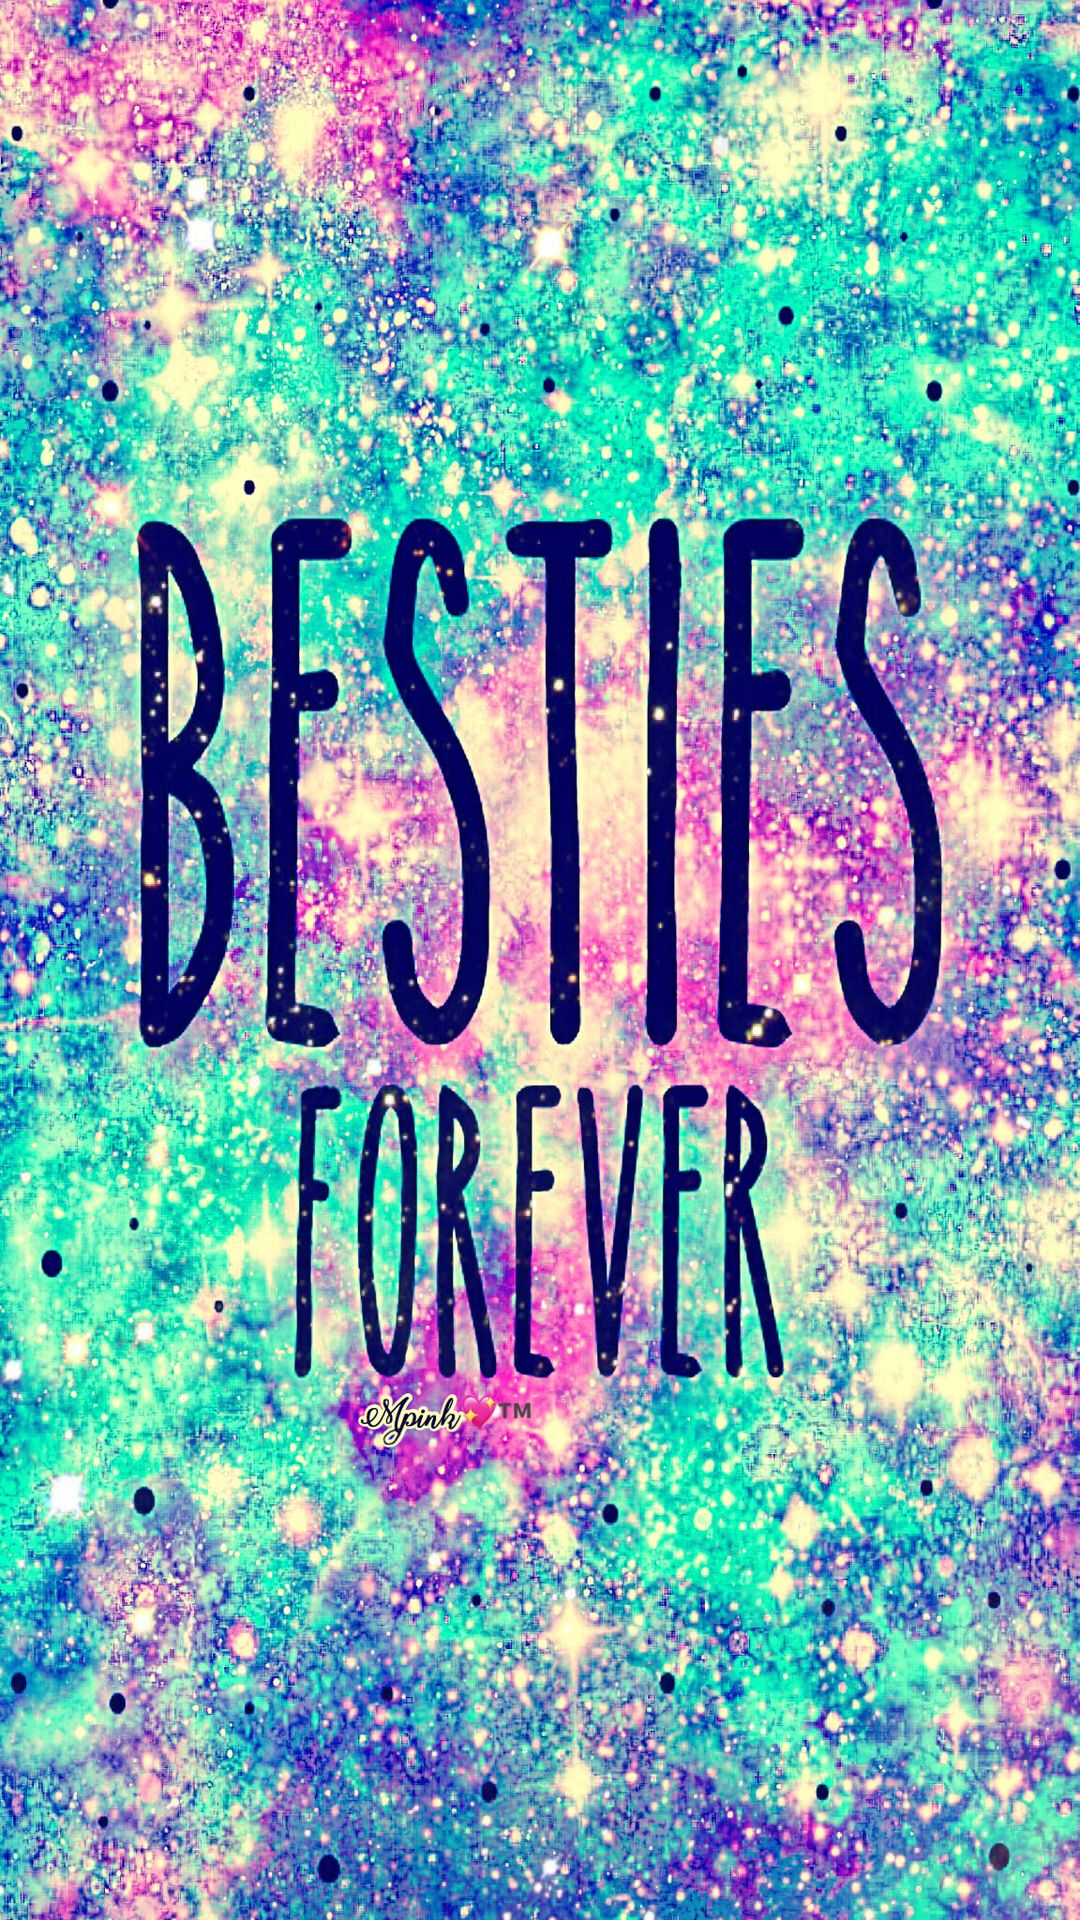 Besties Forever Galaxy Wallpaper #androidwallpaper #iphonewallpaper #wallpaper #galaxy #sparkle ...